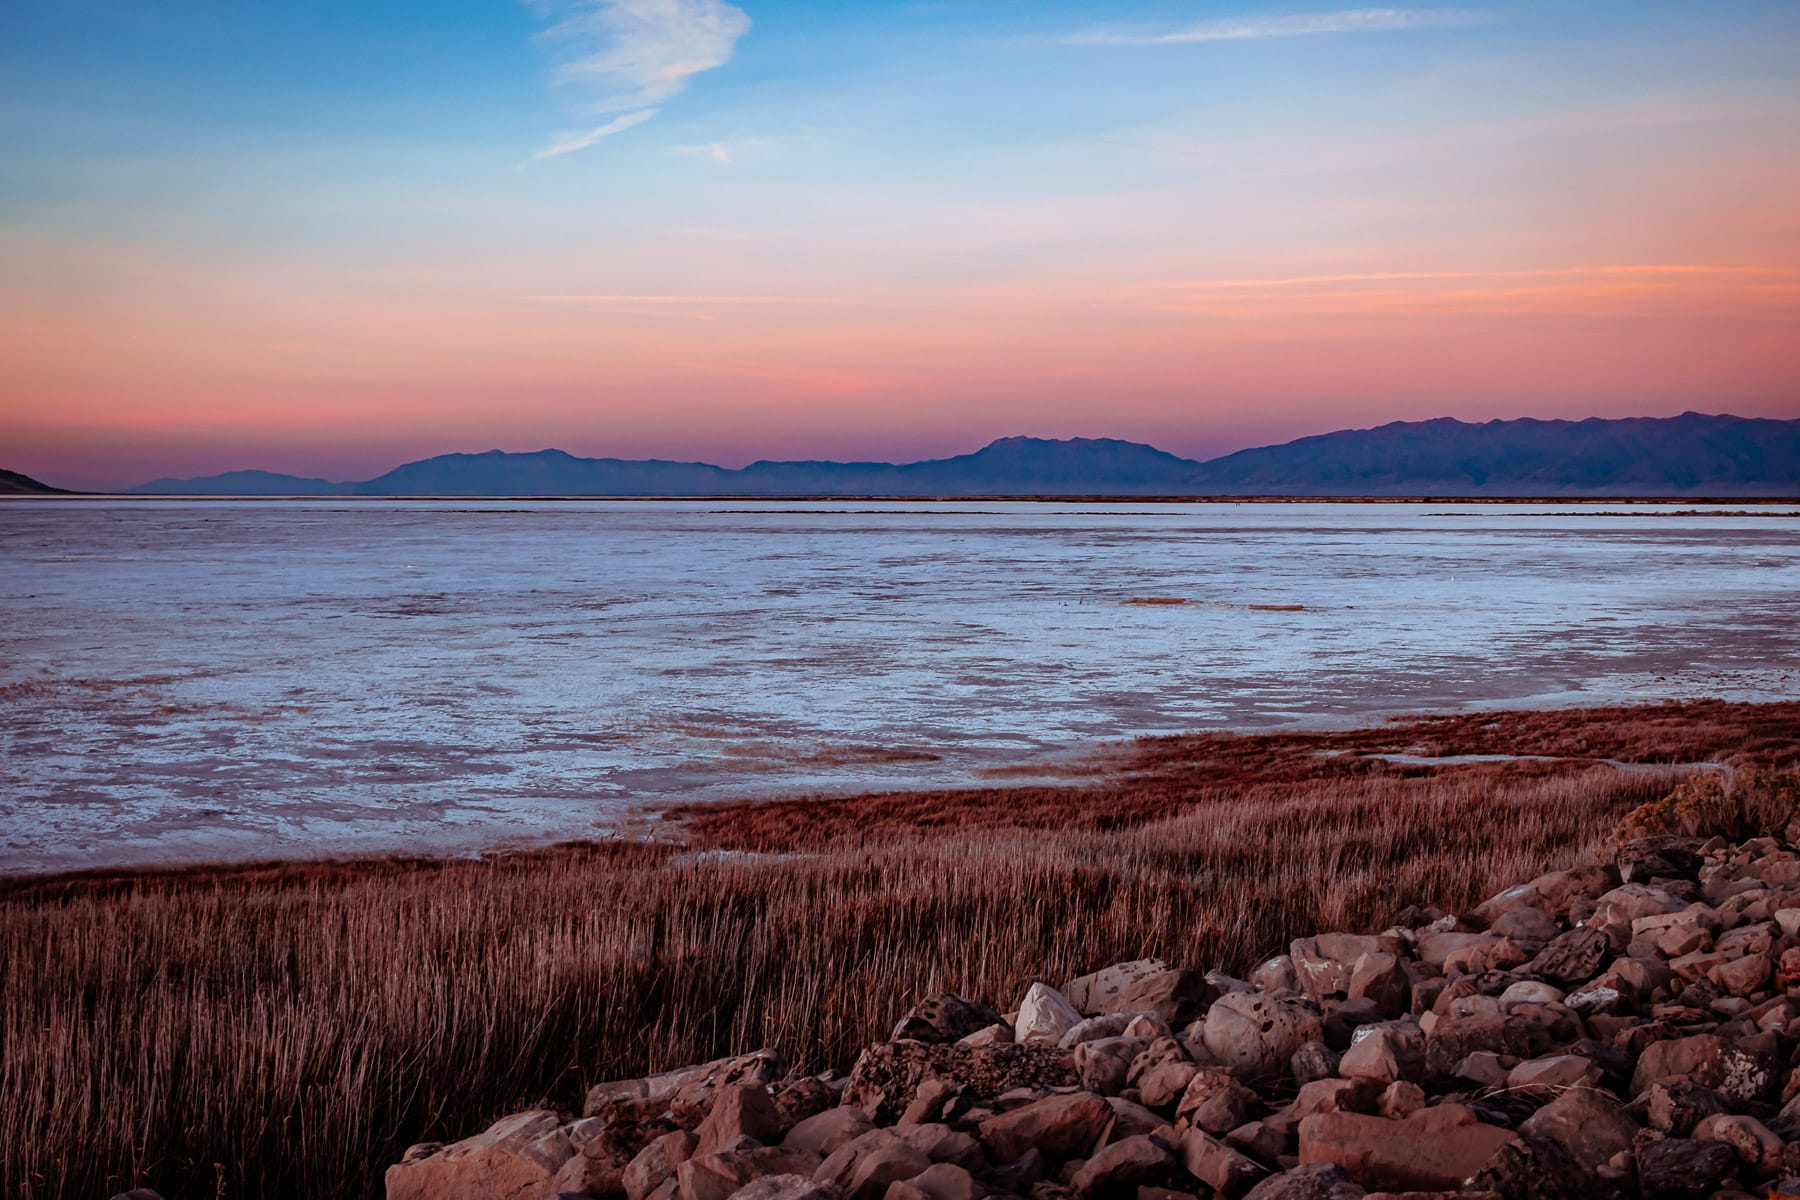 The sun sets on the Great Salt Lake, Utah.